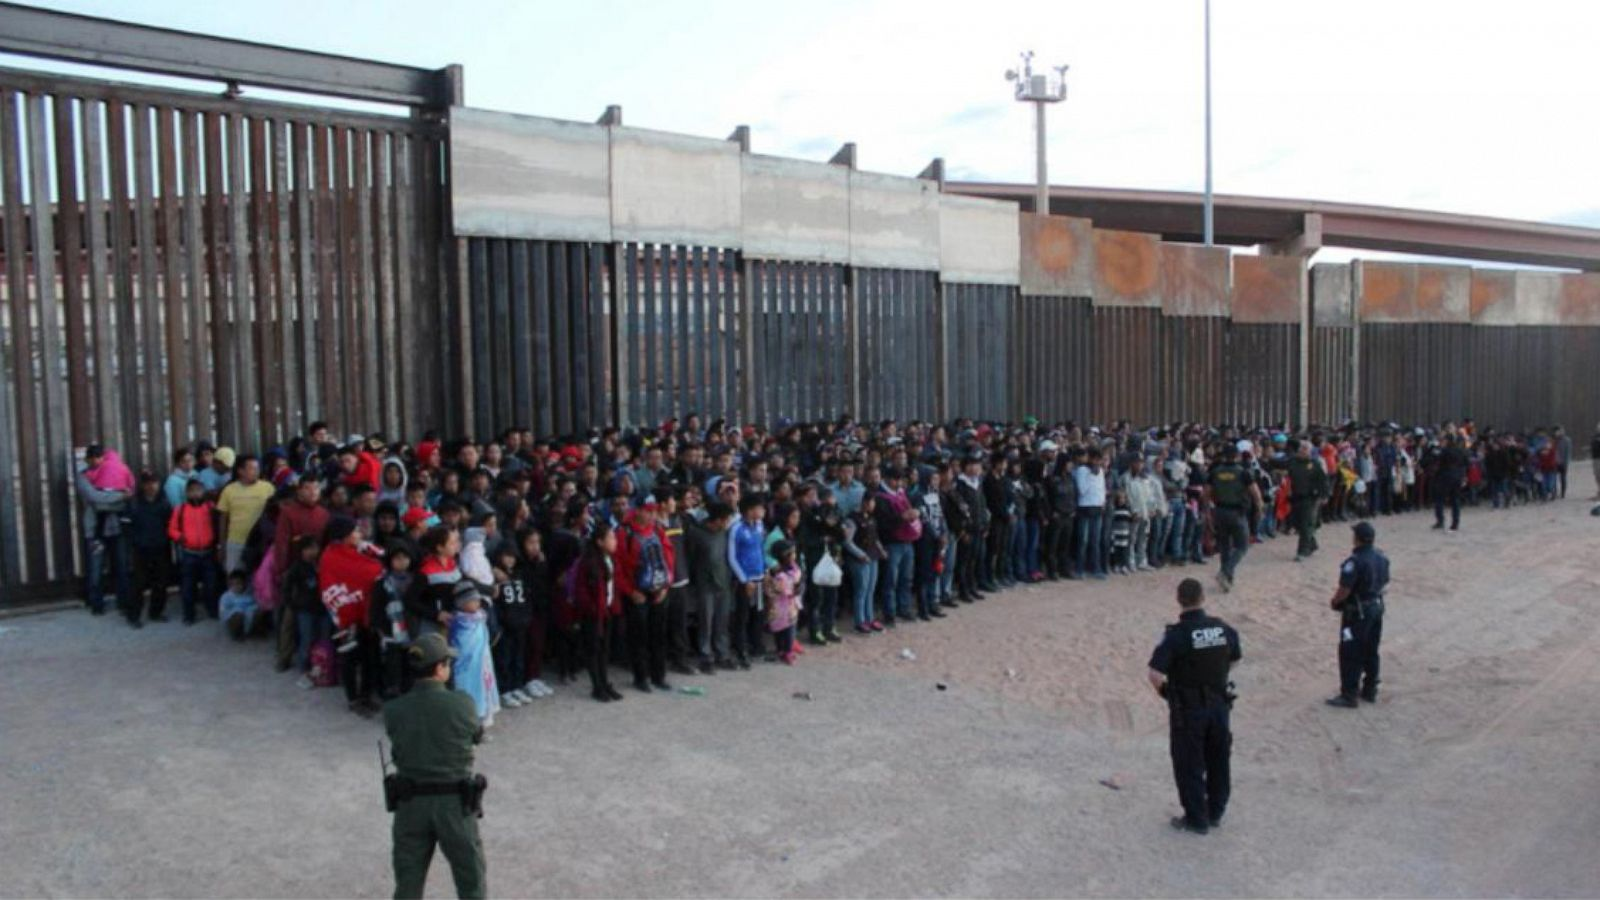 New DHS report: 'Dangerous overcrowding' in migrant detention centers